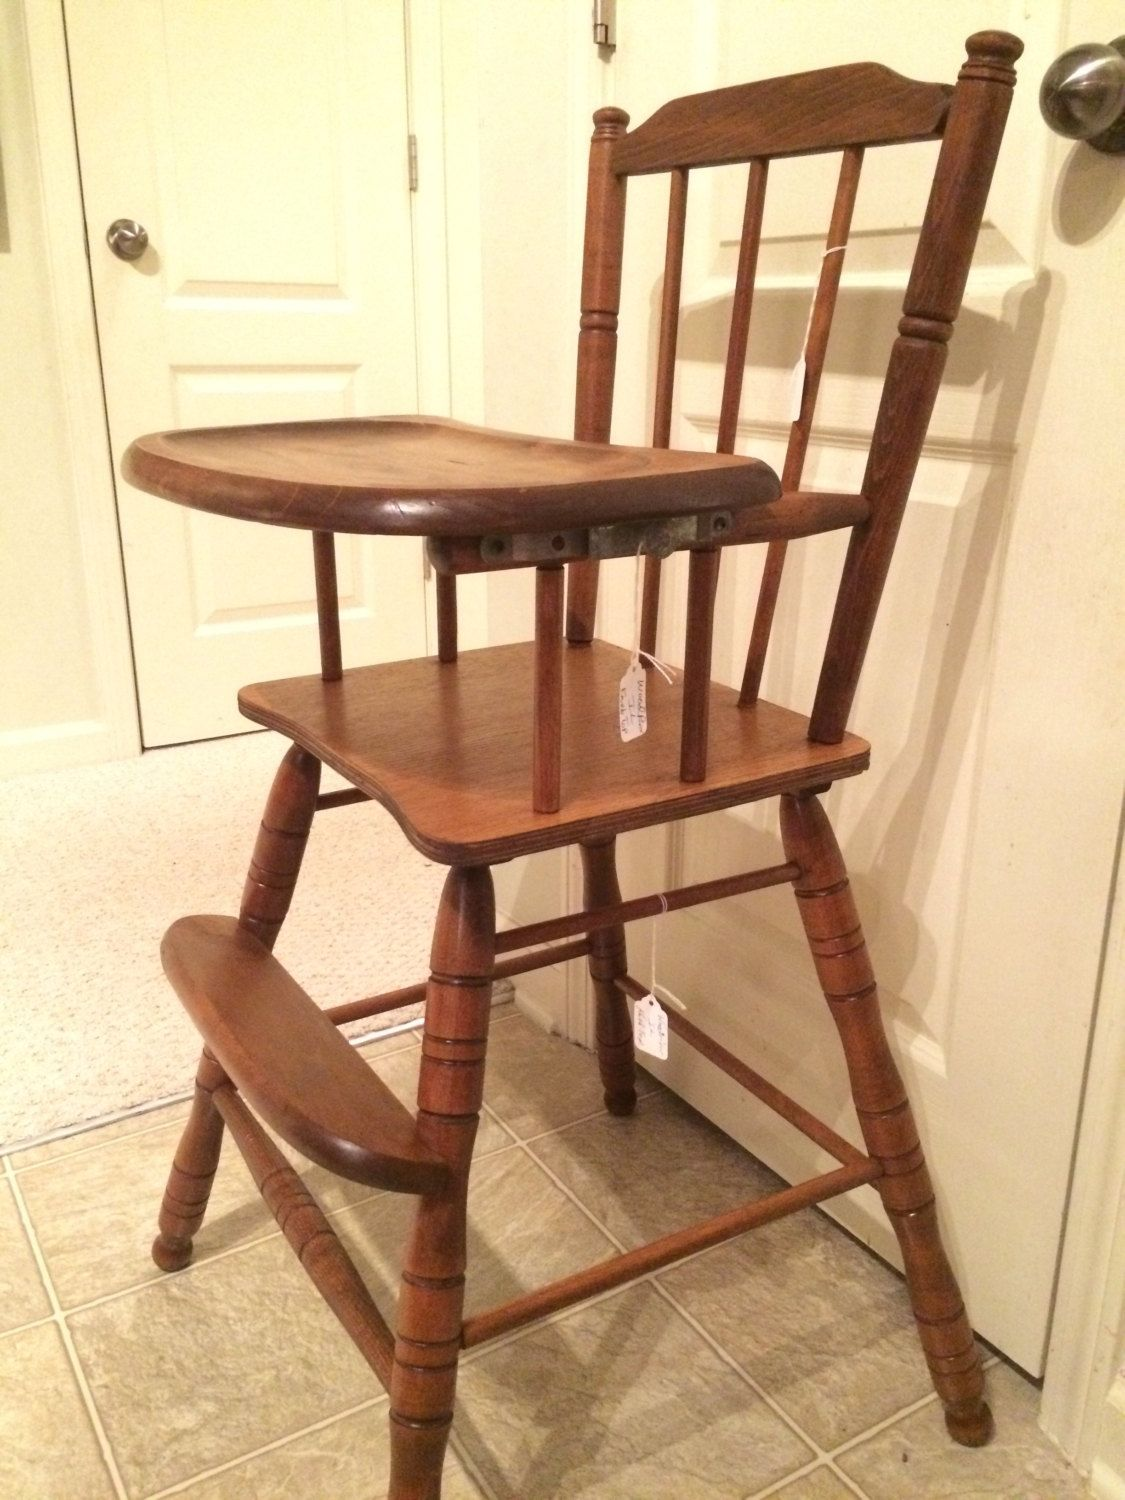 Painted wood high chair - Vintage Wooden High Chair Jenny Lind Antique High Chair Vintage High Chair